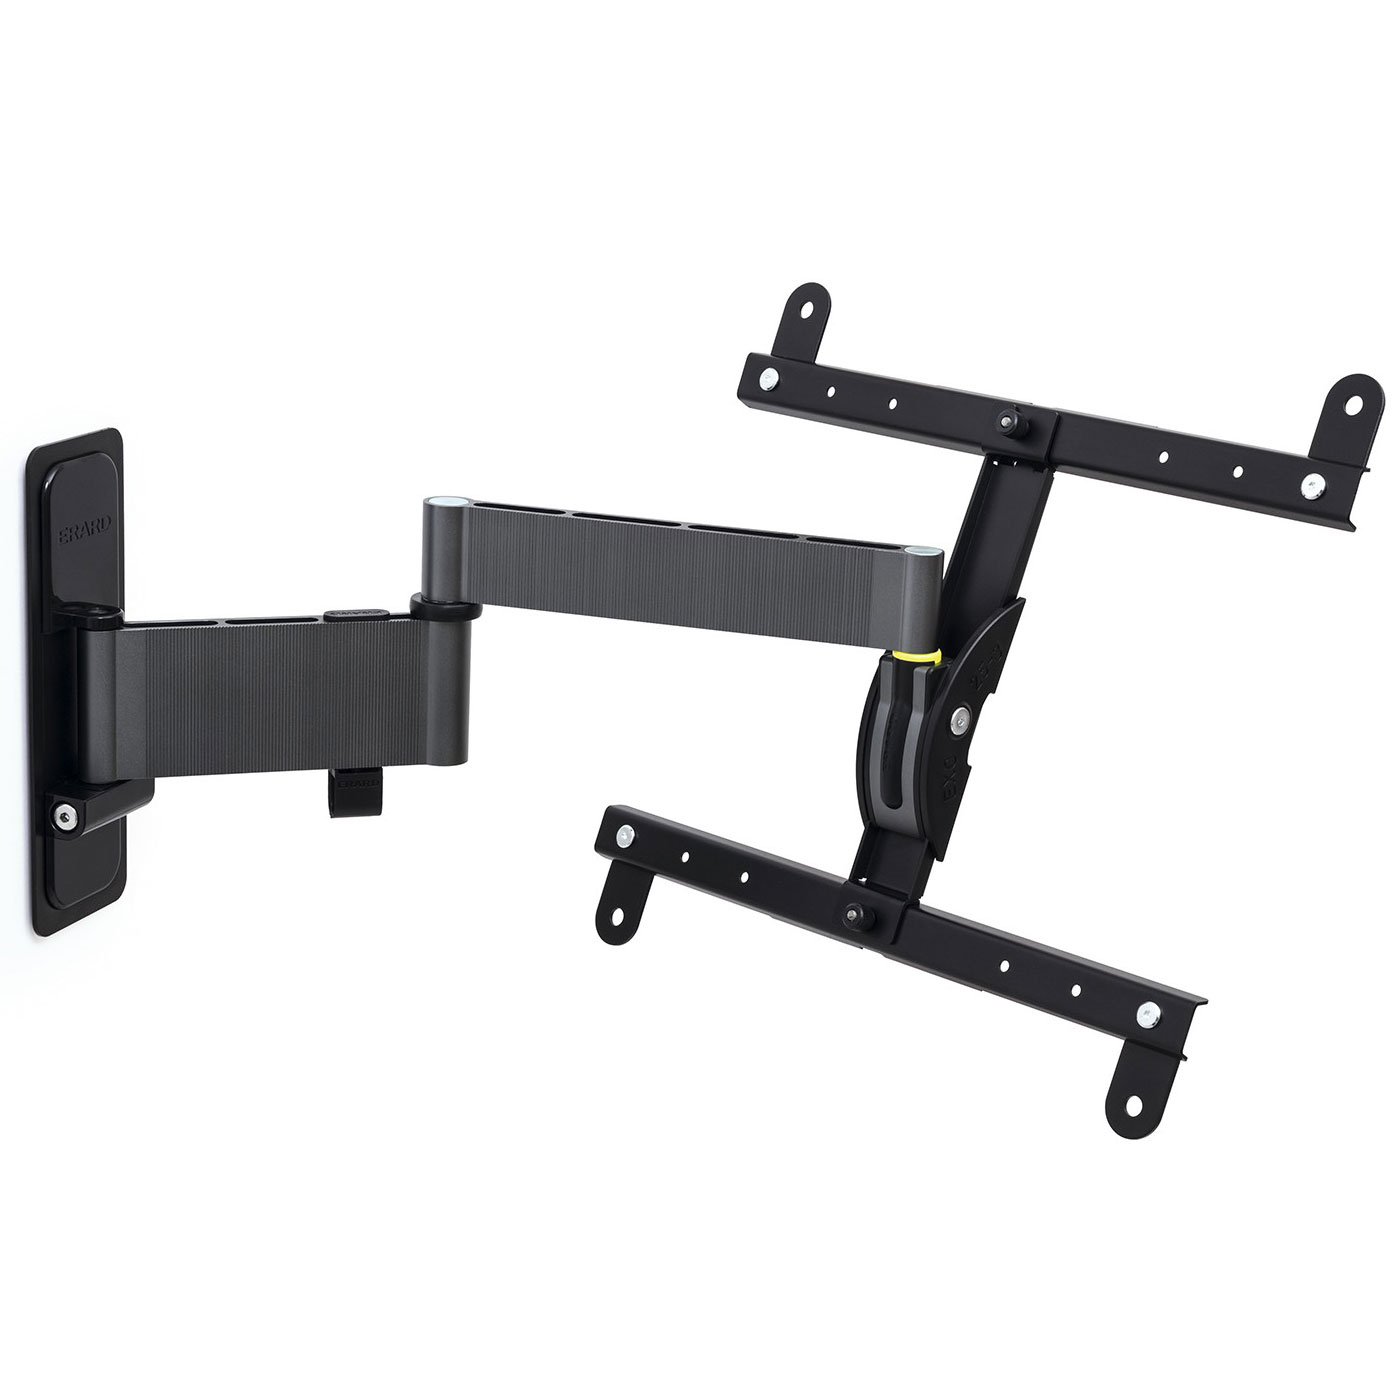 Erard exo 400tw3 support mural tv erard group sur - Support tv mural orientable ...